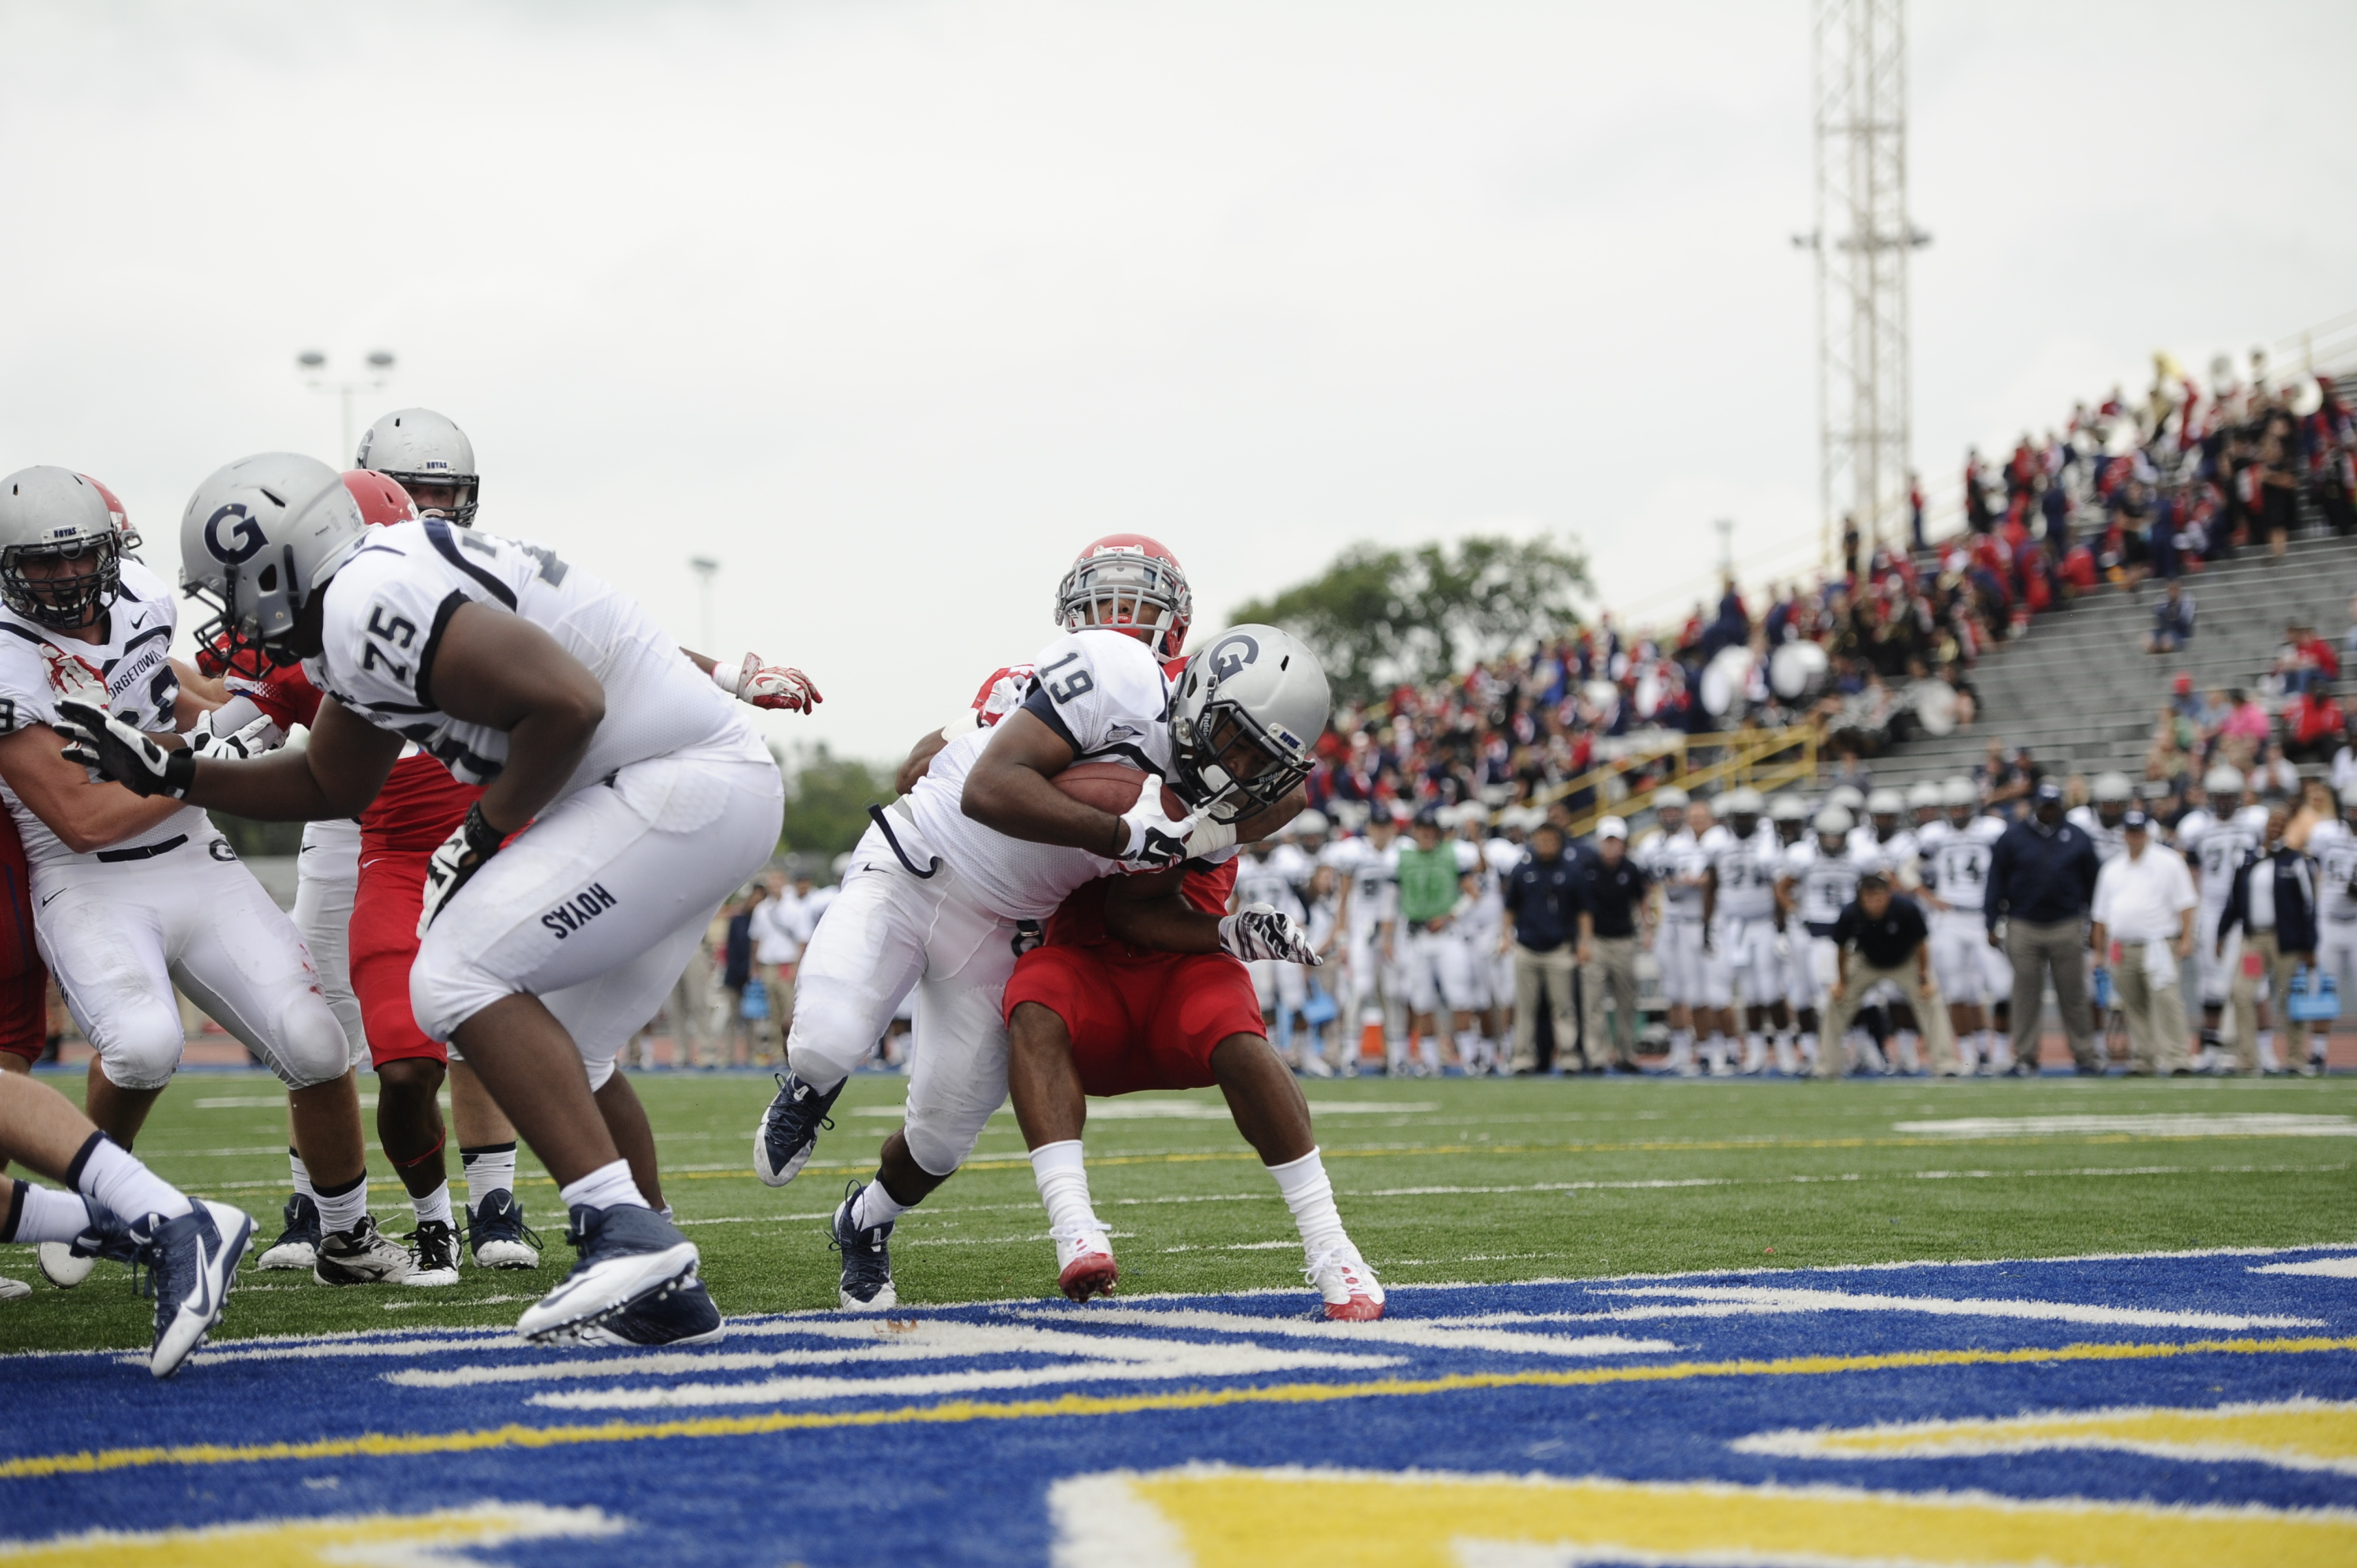 Daniel Wright scored his first career touchdown at Dayton last week.